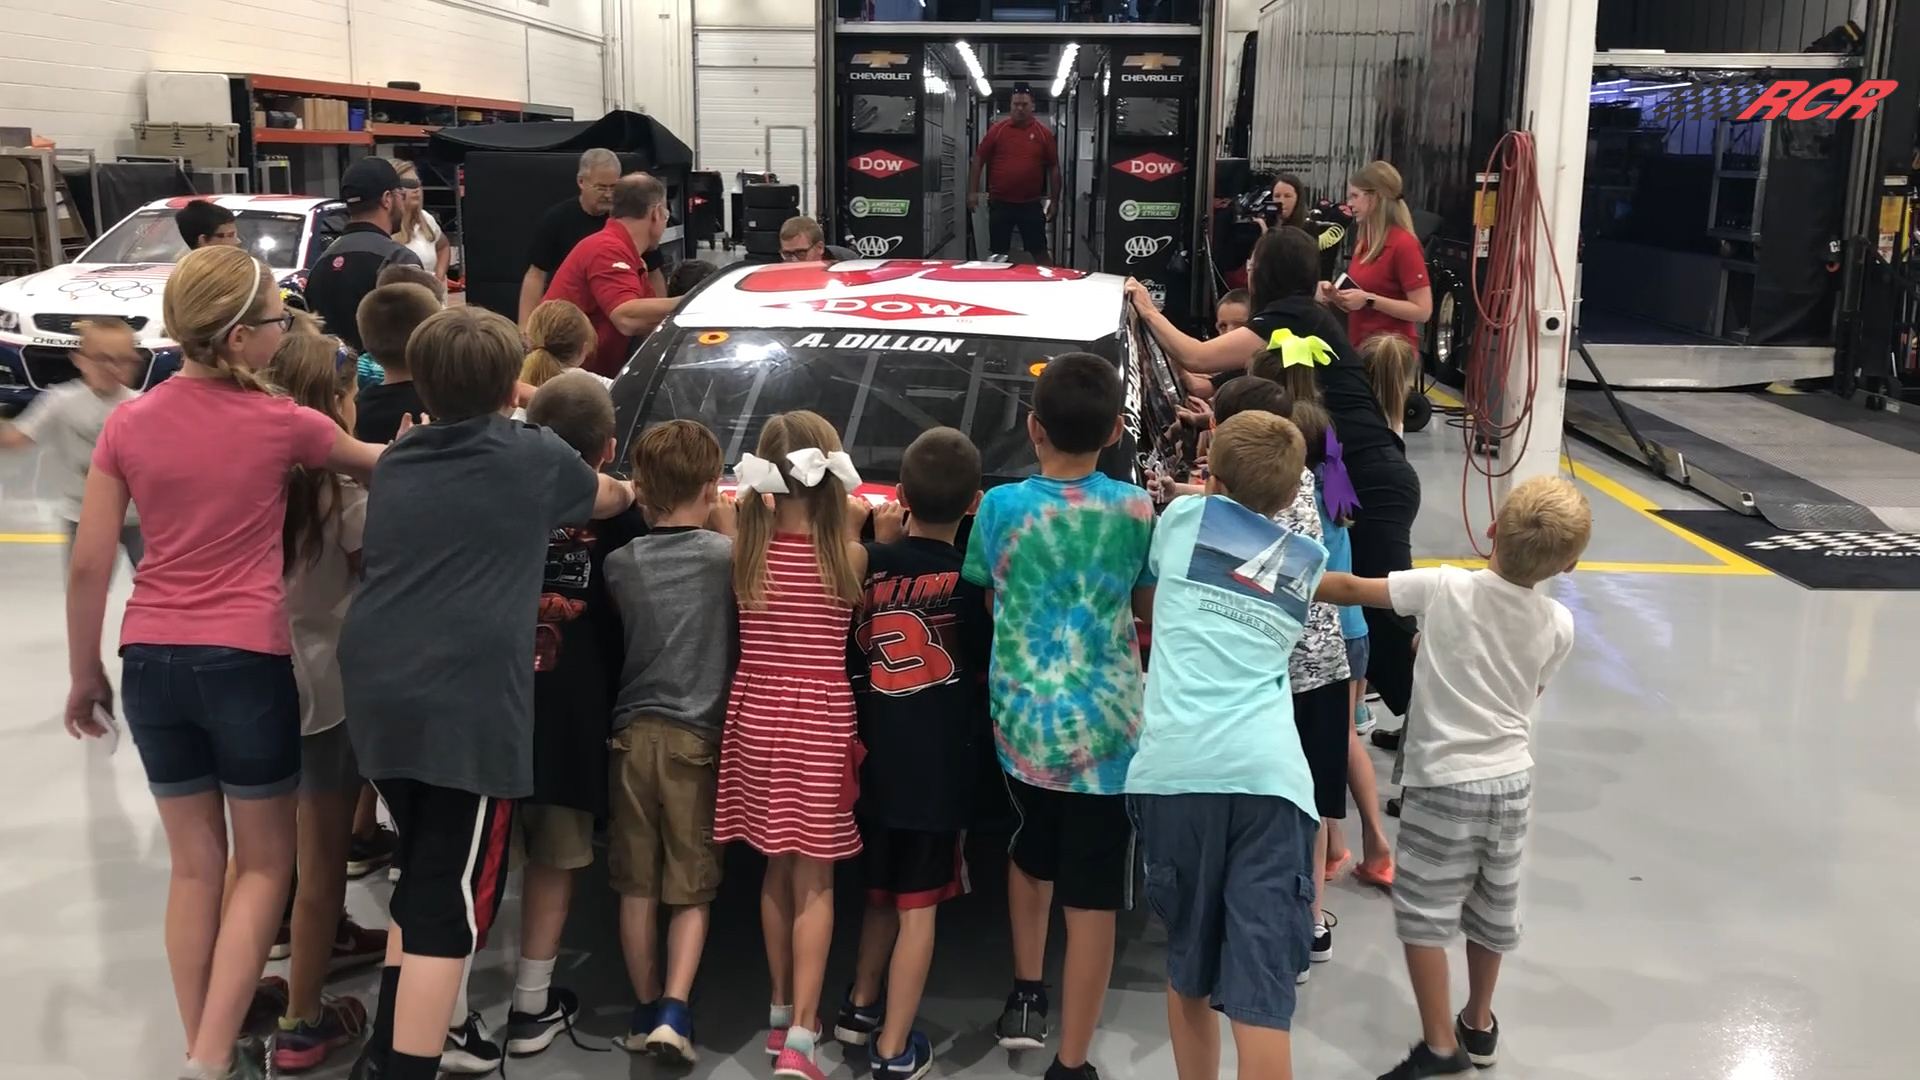 RCR STEM Day: Kids Design Paint Schemes, Race Cars and Load Hauler